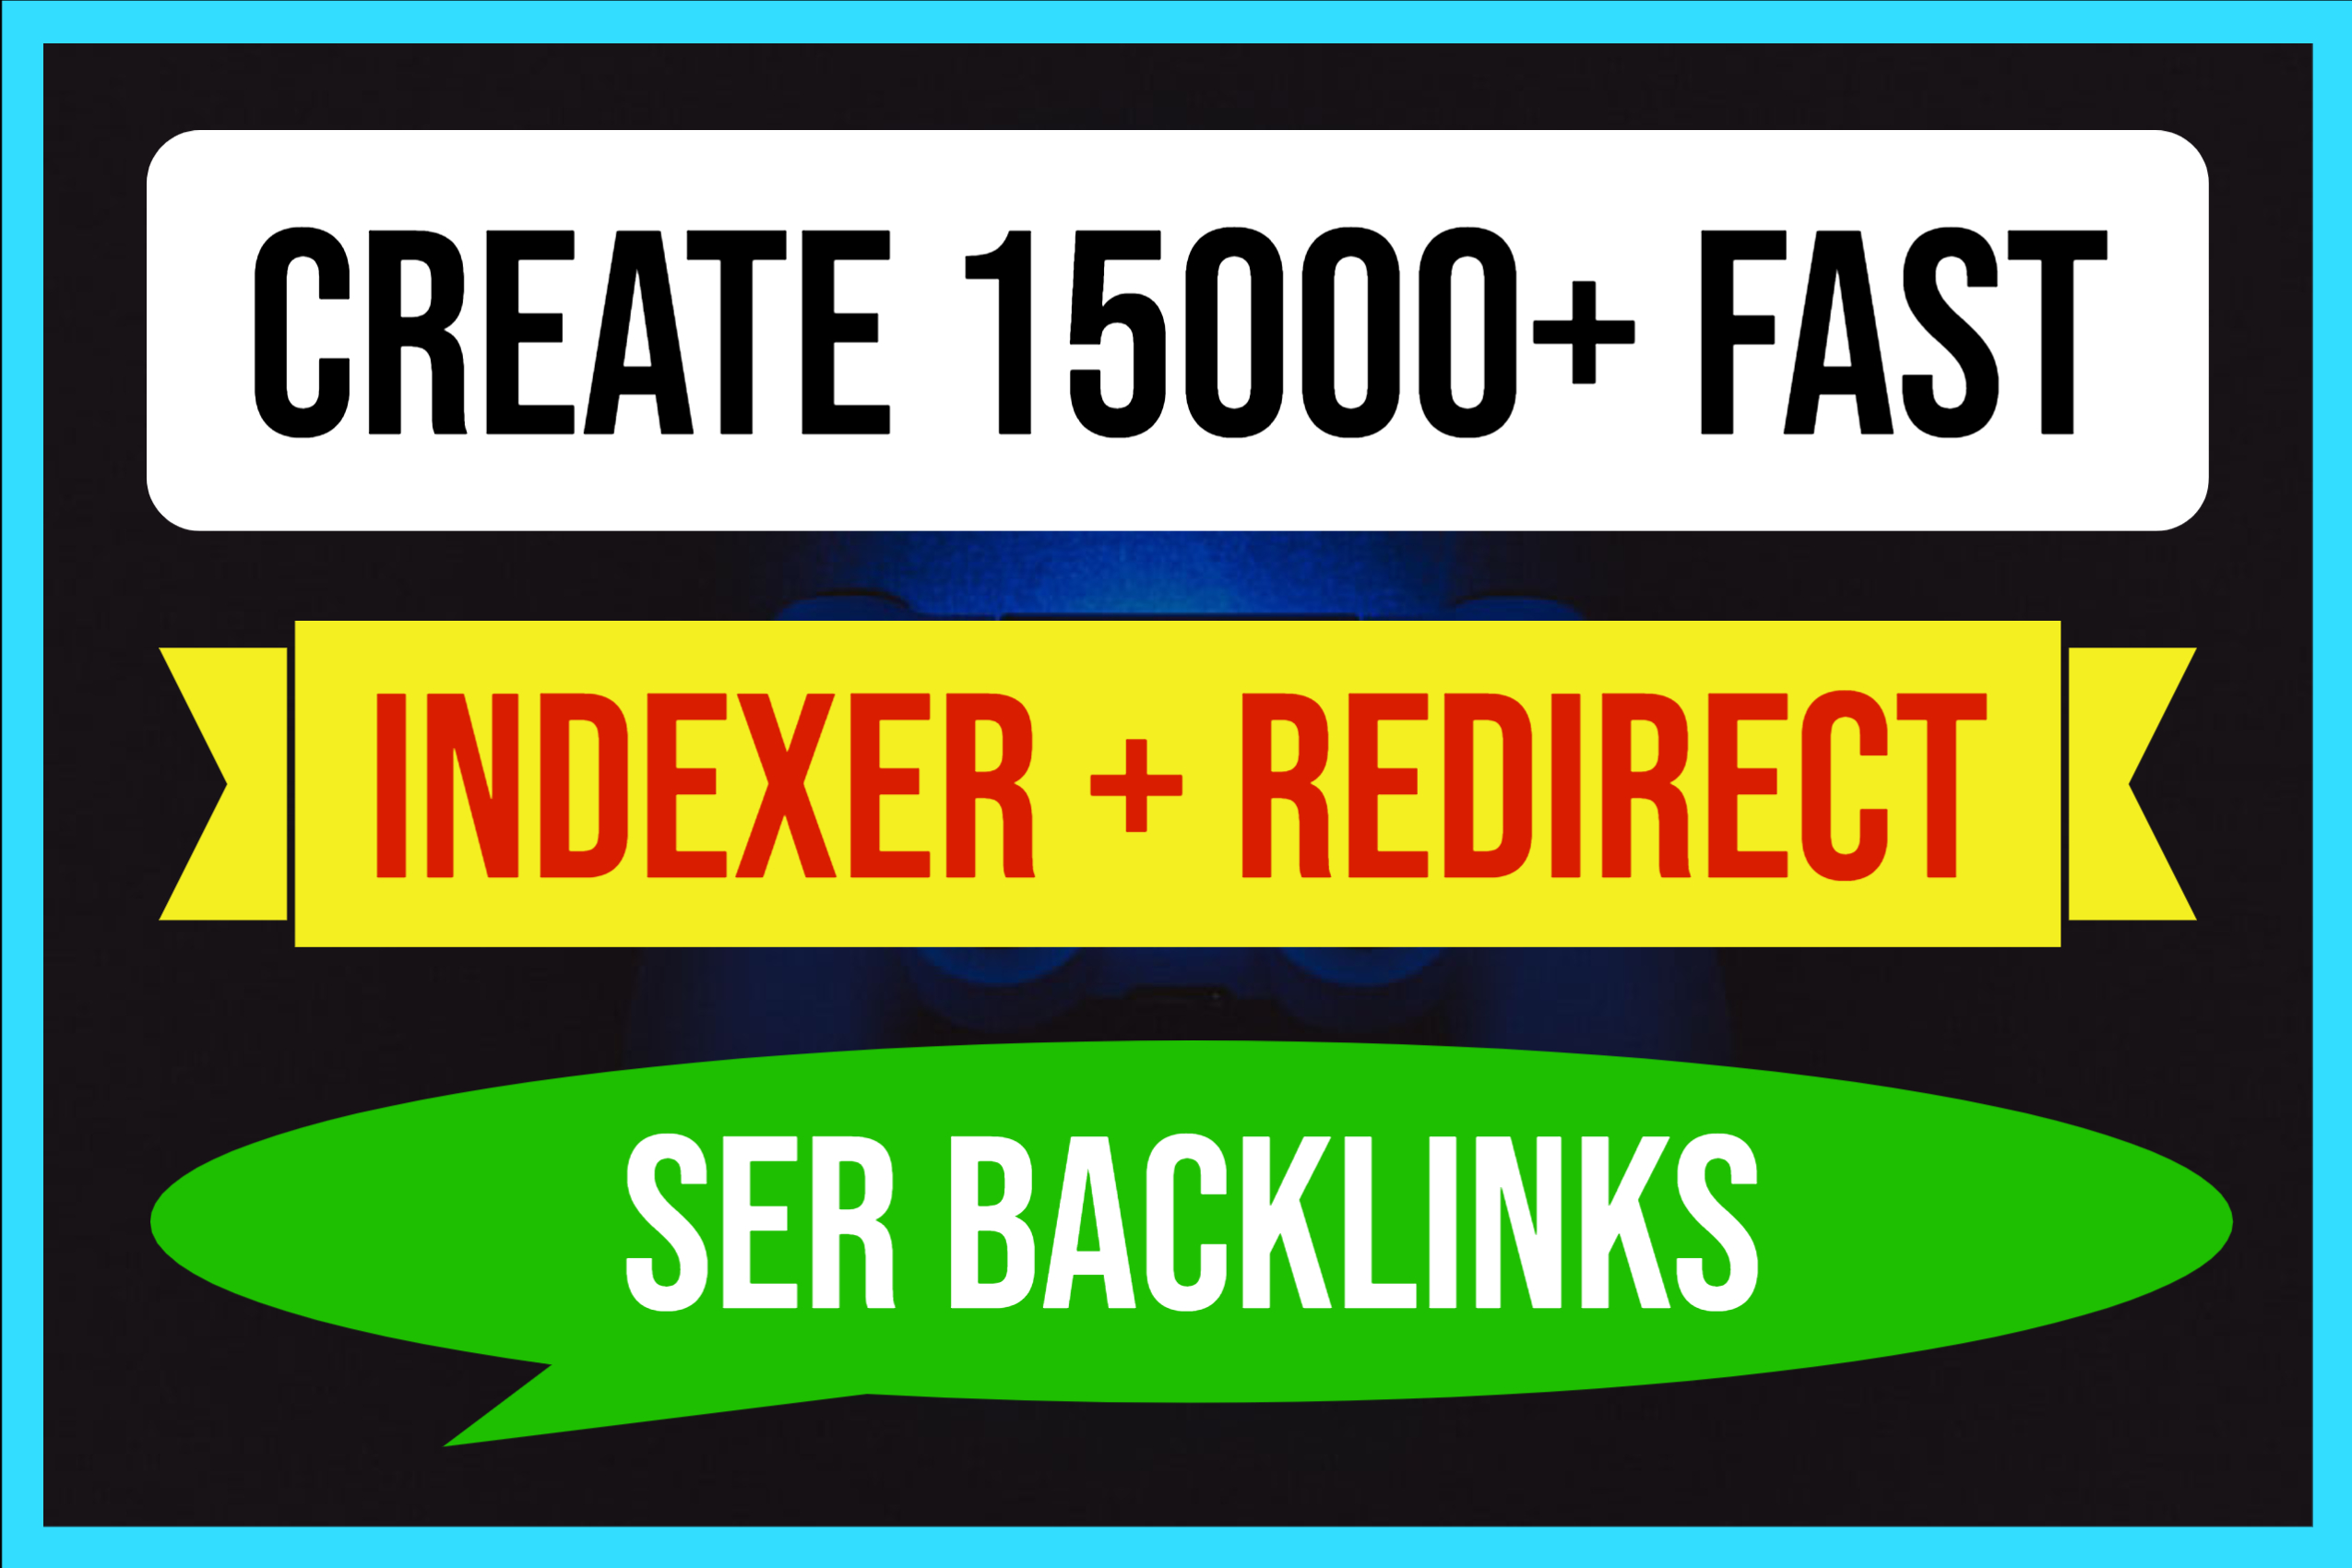 Create 15000+ Fast Redirect Indexer Dofollow Backlinks